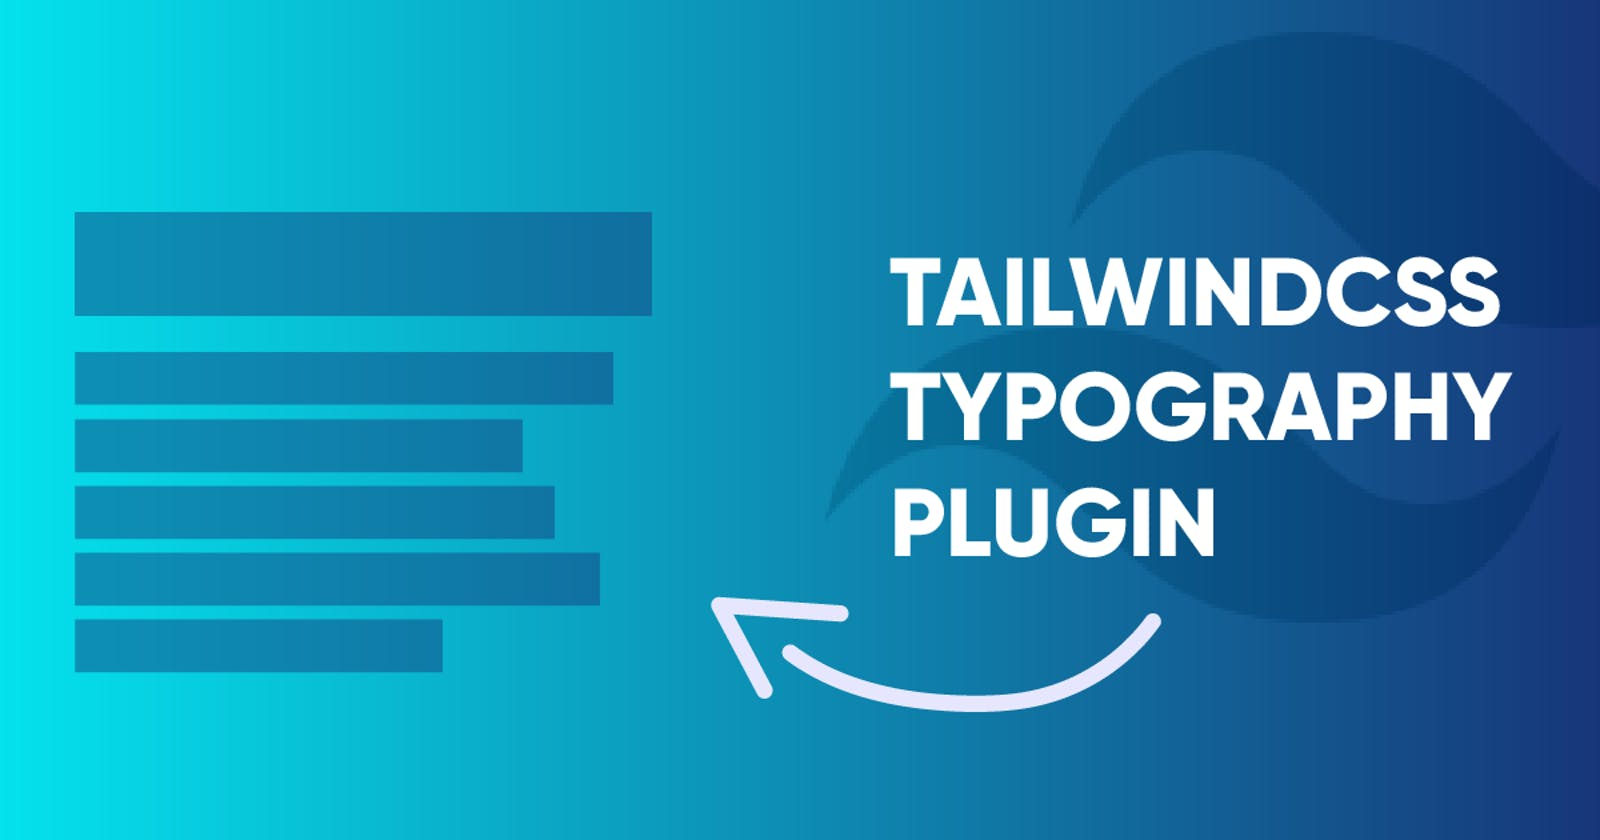 How to Use the TailwindCSS Typography Plugin